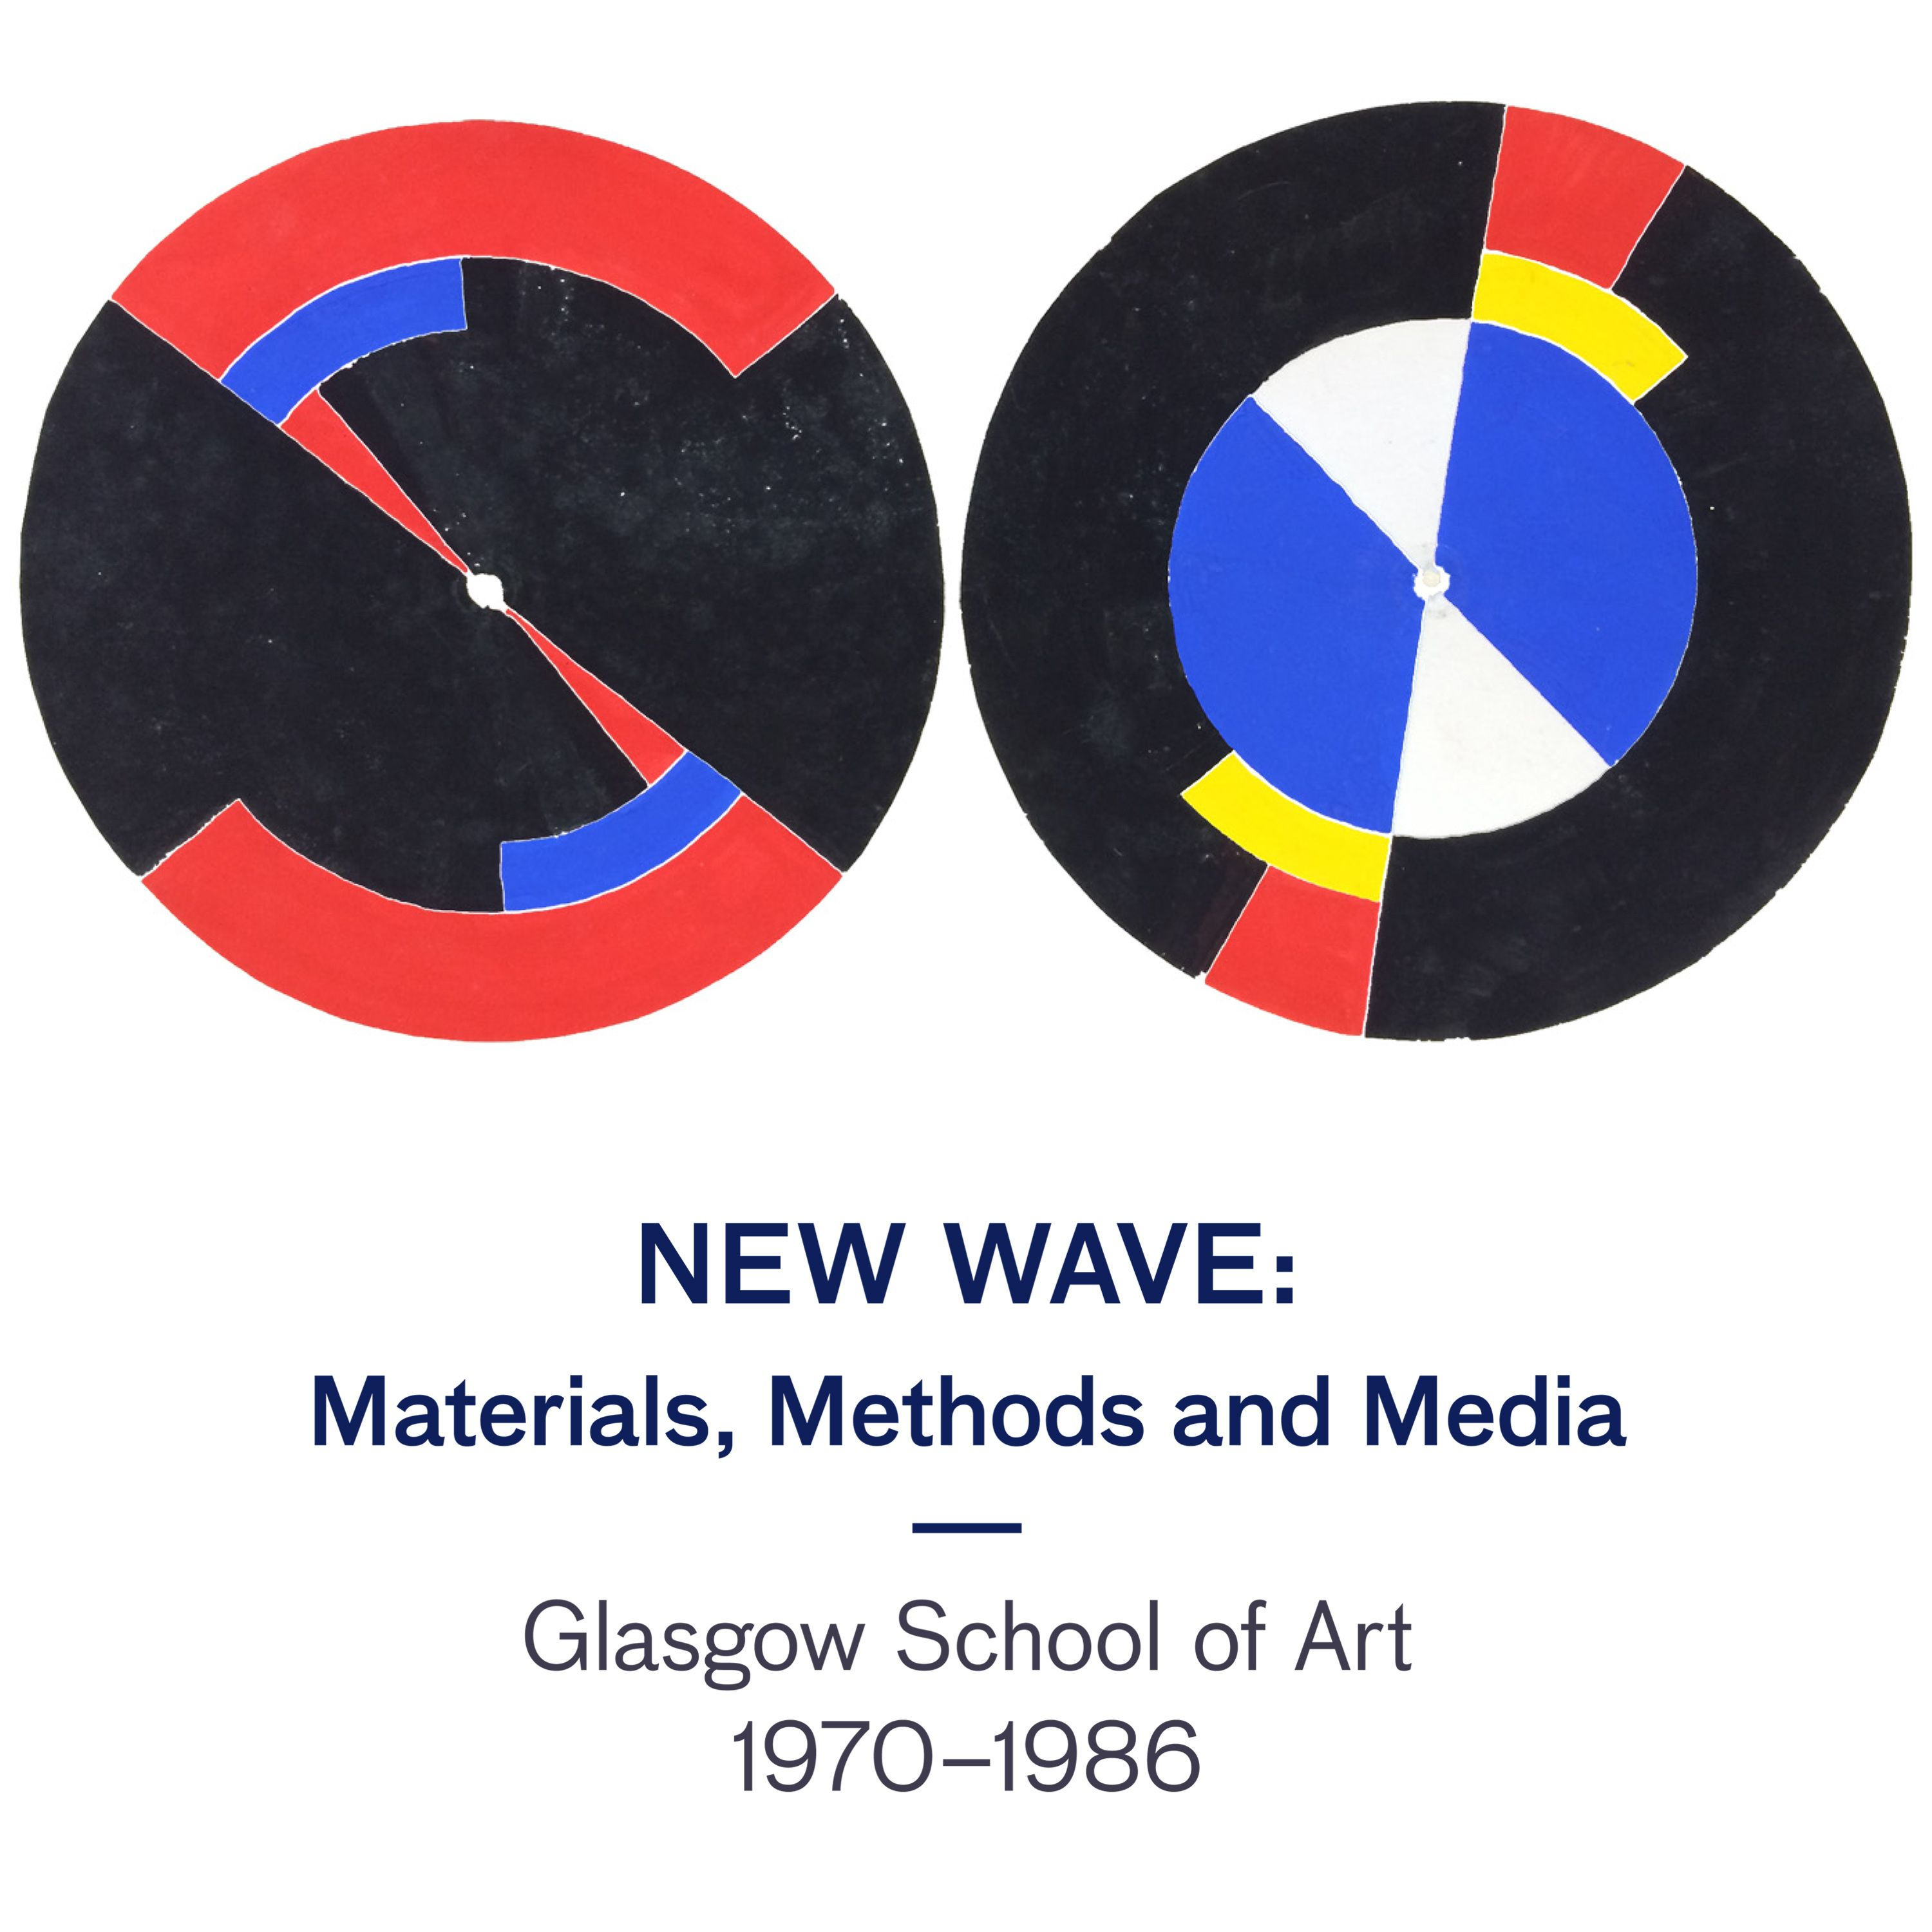 New Wave: Materials, Methods and Media, Glasgow School of Art 1970-1986